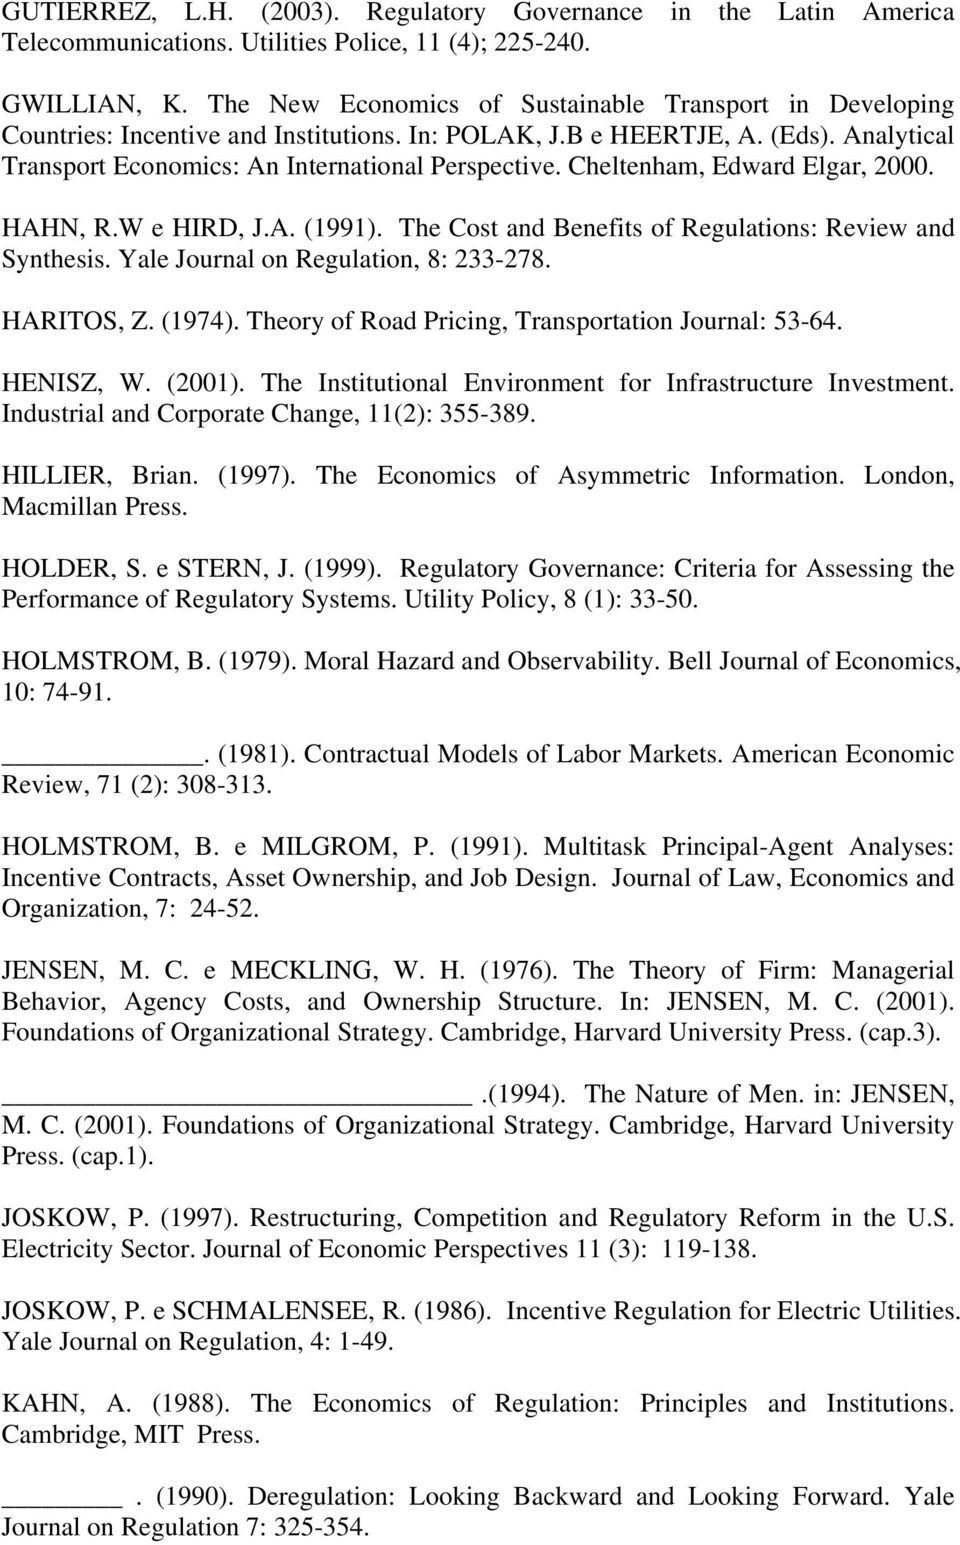 Cheltenham, Edward Elgar, 2000. HAHN, R.W e HIRD, J.A. (1991). The Cost and Benefits of Regulations: Review and Synthesis. Yale Journal on Regulation, 8: 233-278. HARITOS, Z. (1974).